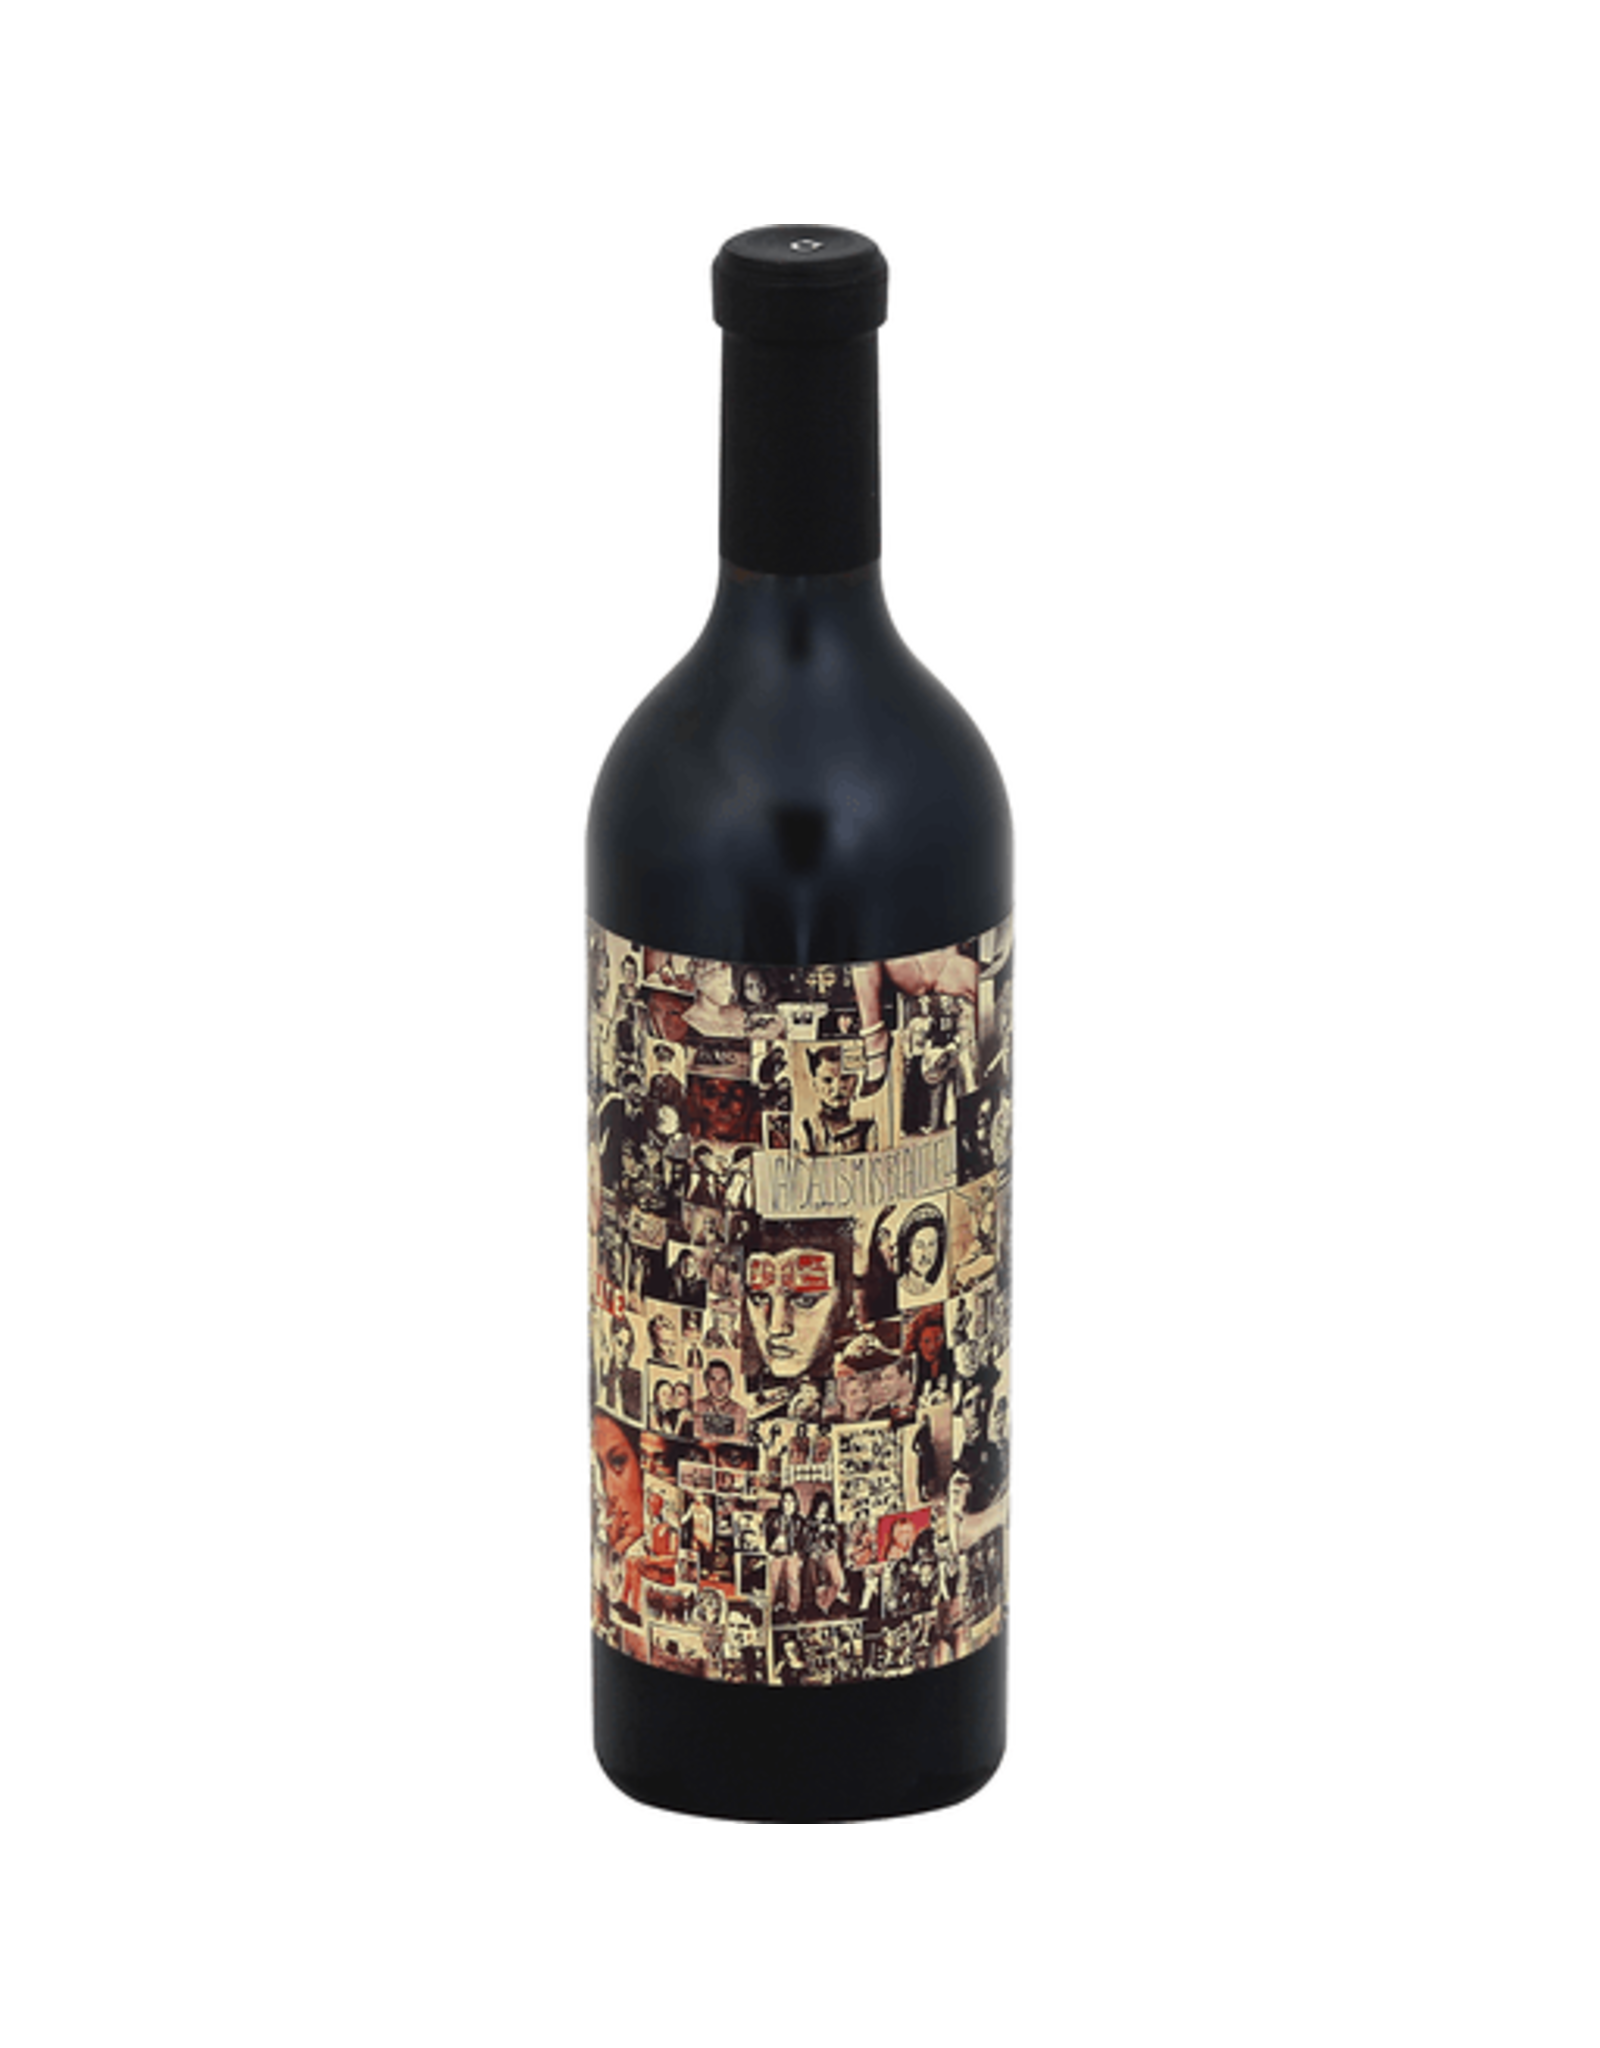 Orin Swift Abstract Red Blend, California 2016